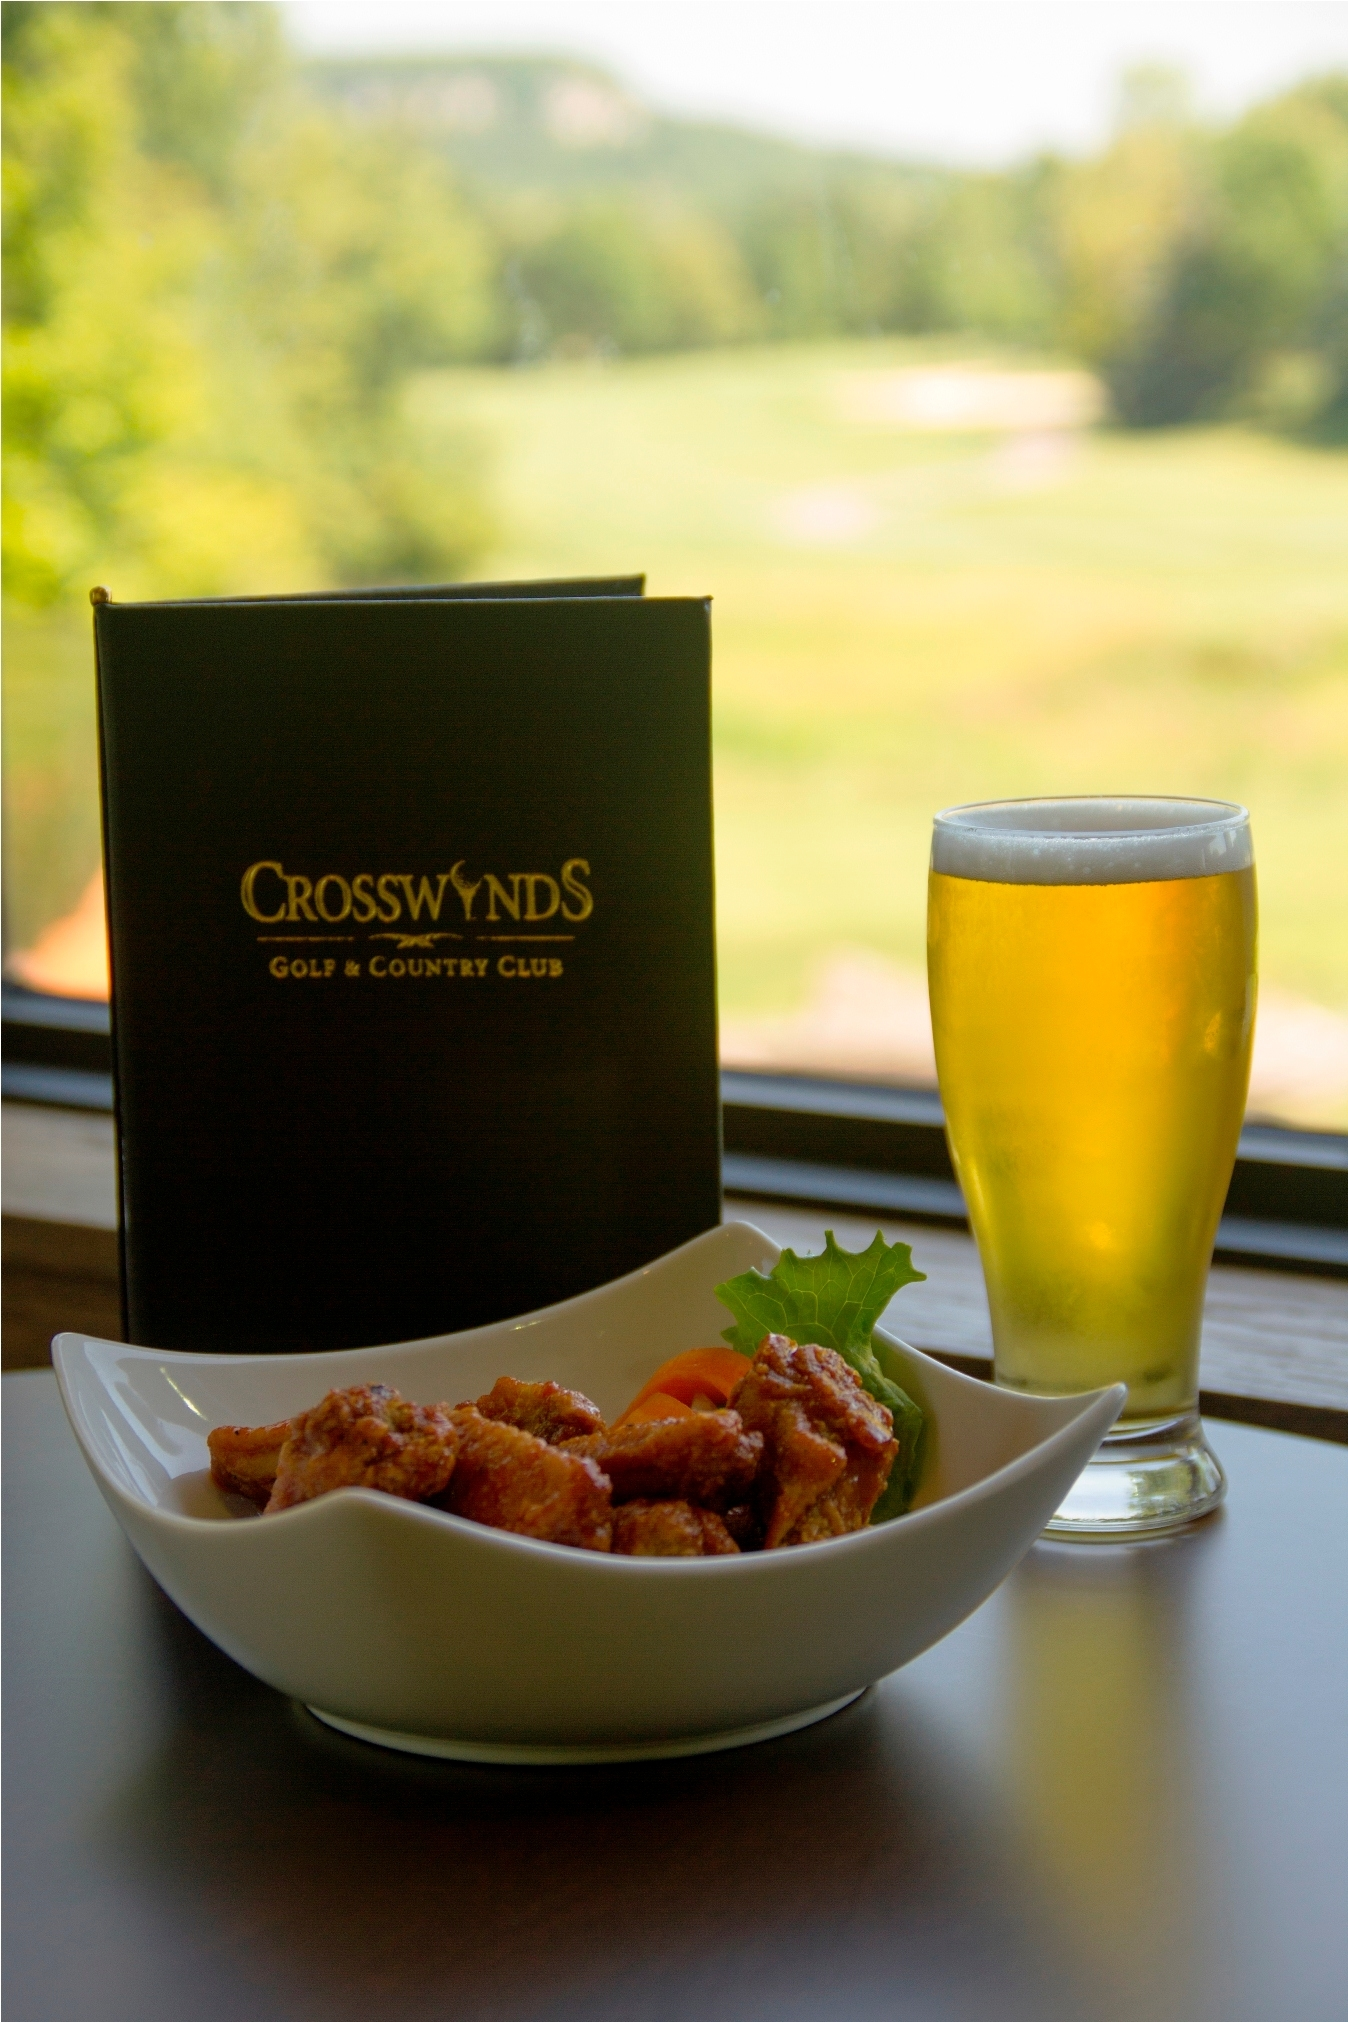 Crosswinds Golf & Country